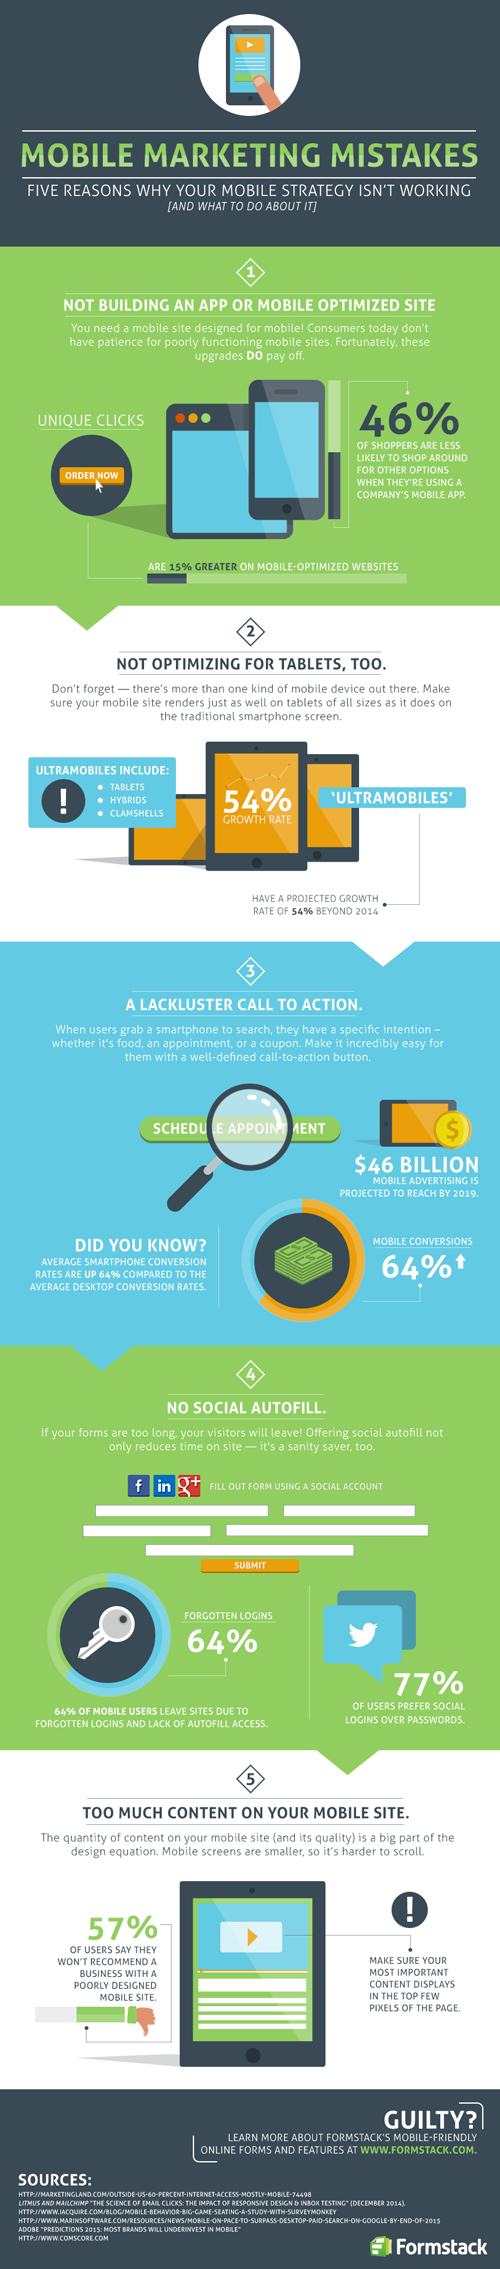 201501-Formstack-MobileInfographic_500